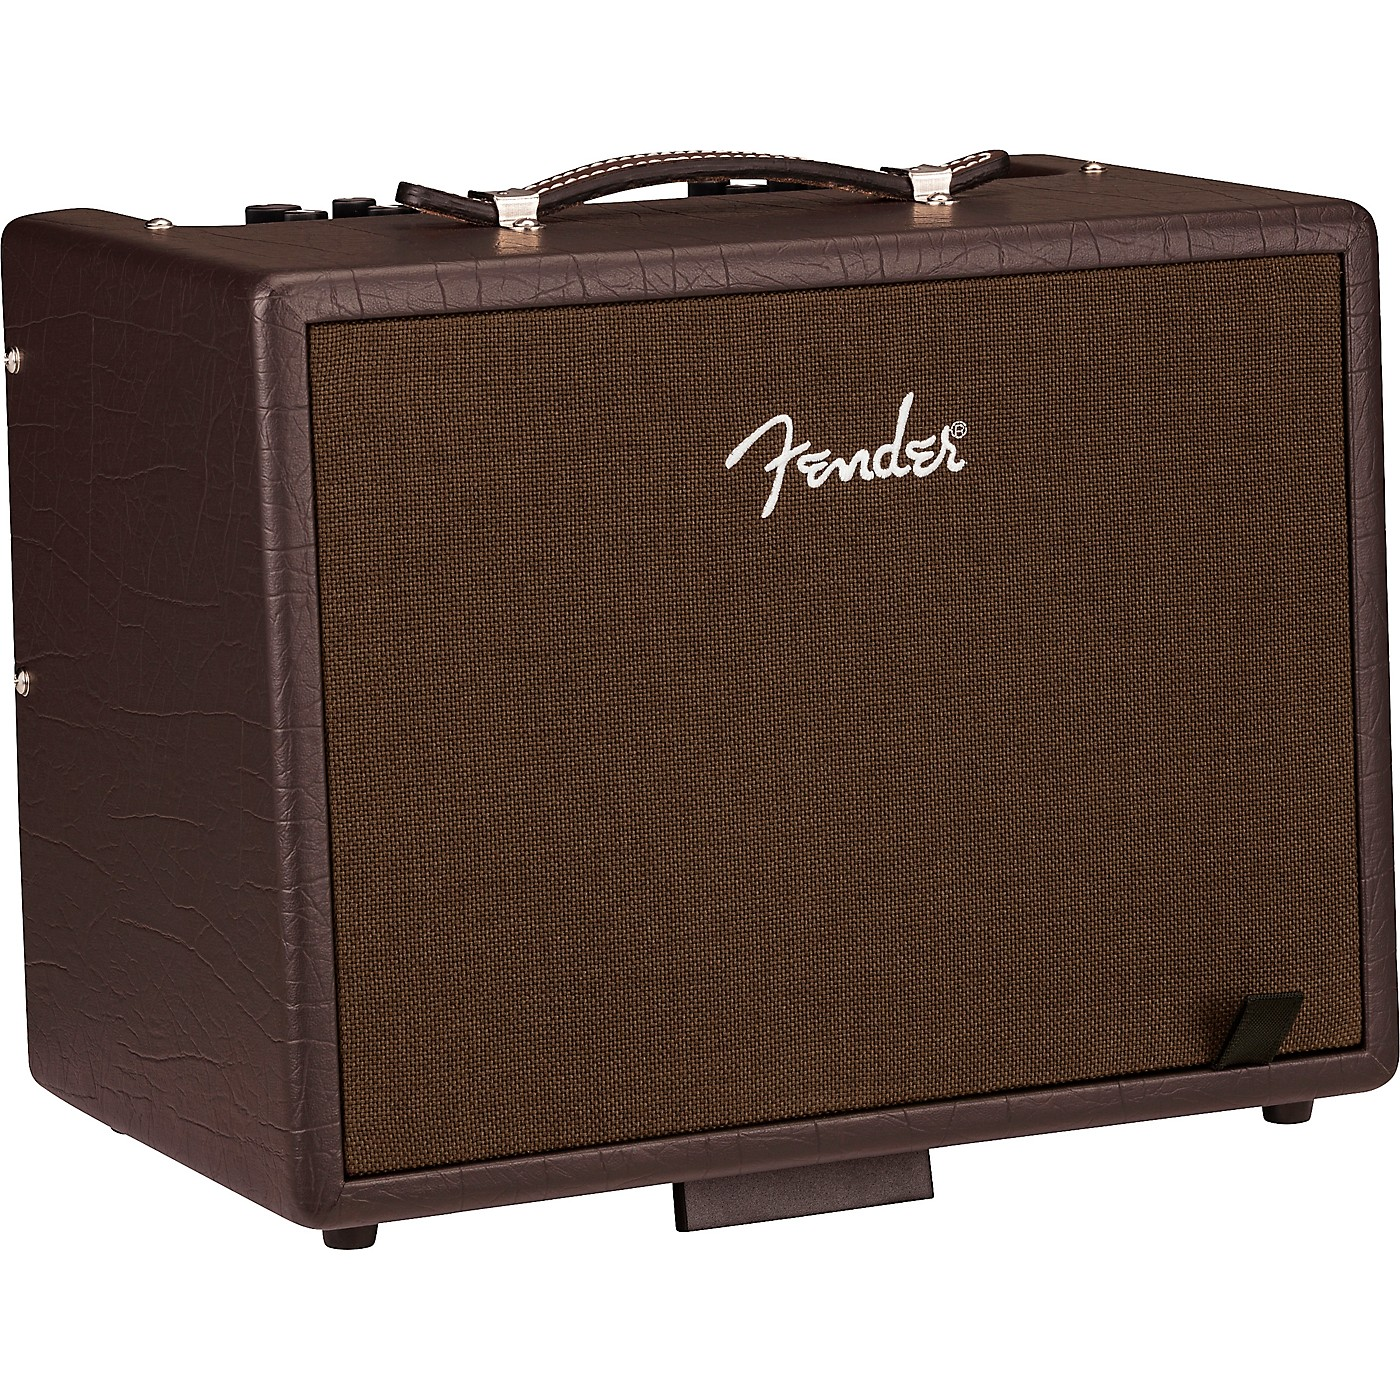 Fender Acoustic Jr 100W 1x8 Acoustic Guitar Combo Amplifier thumbnail